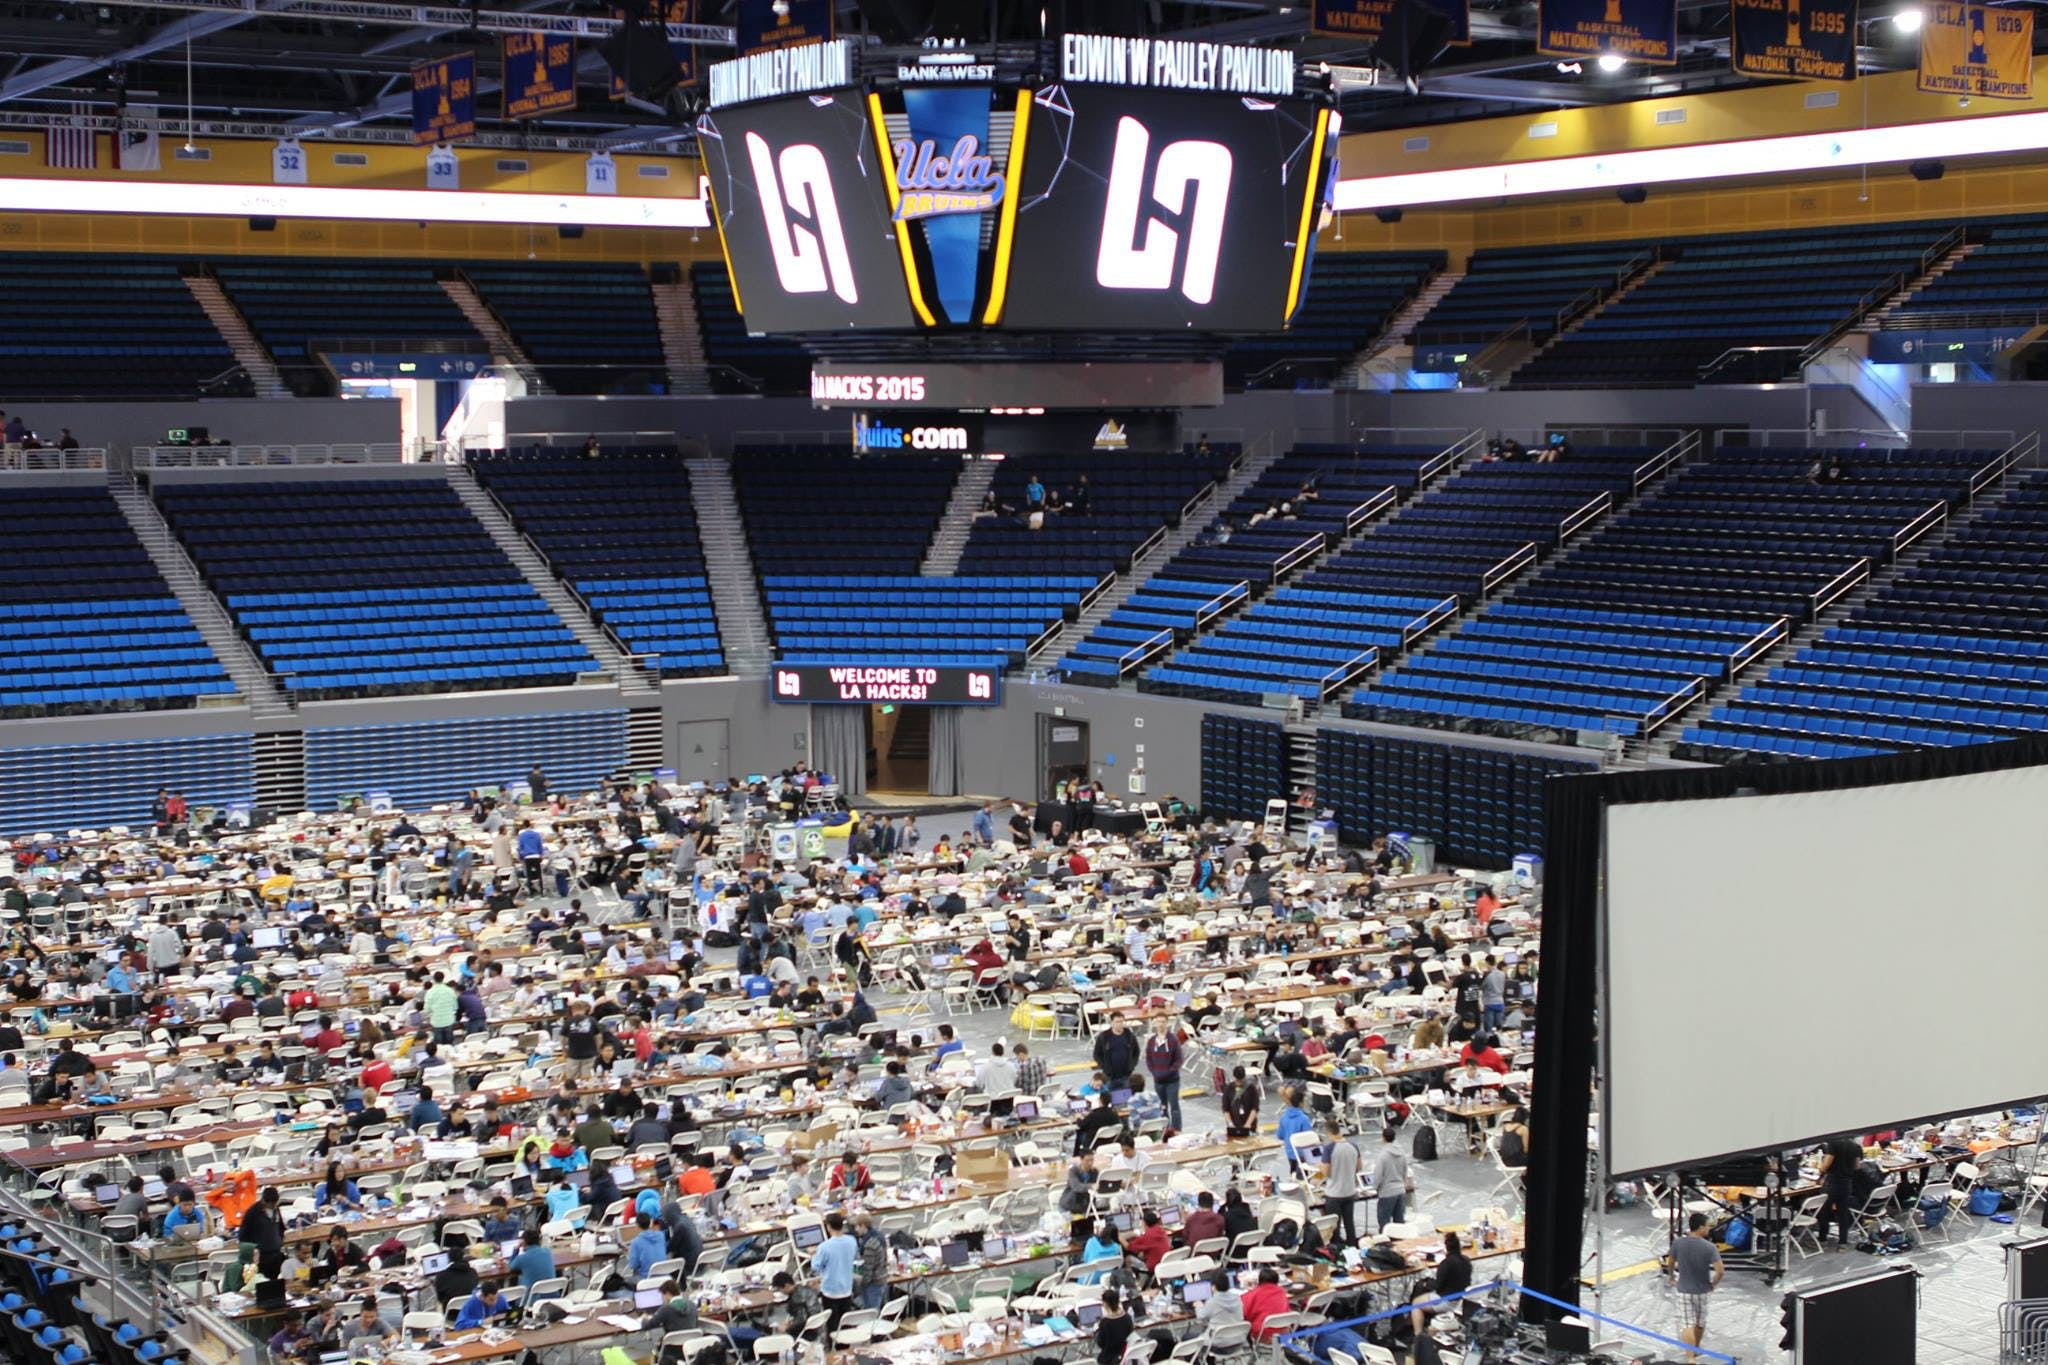 Stadium is filled with rows of tables and students using computers.